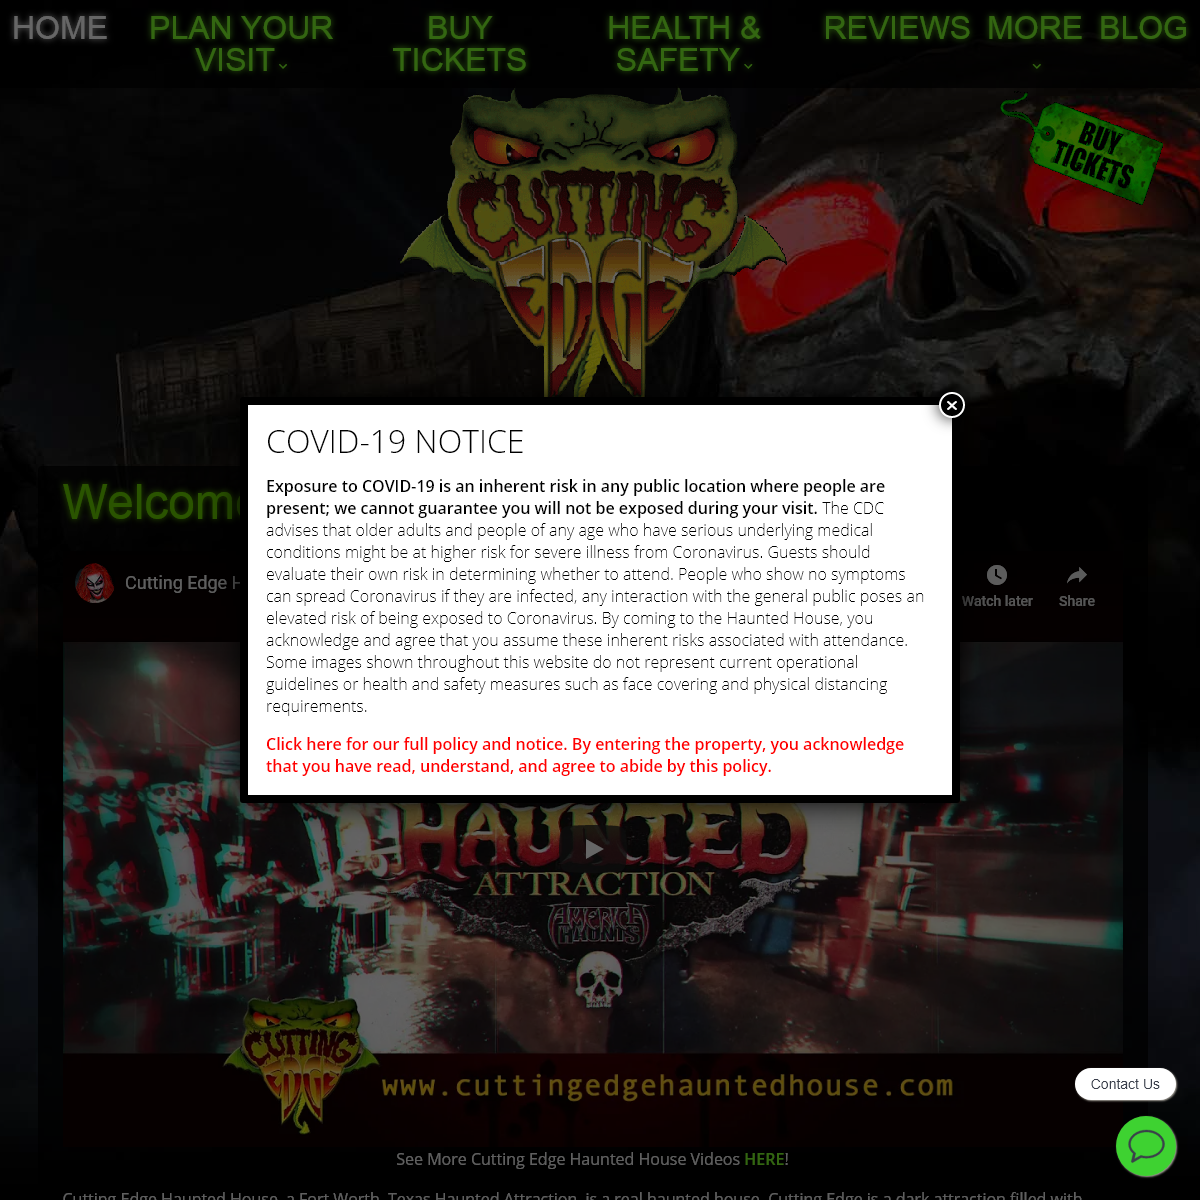 Welcome to Cutting Edge Haunted House - Cutting Edge Haunted House